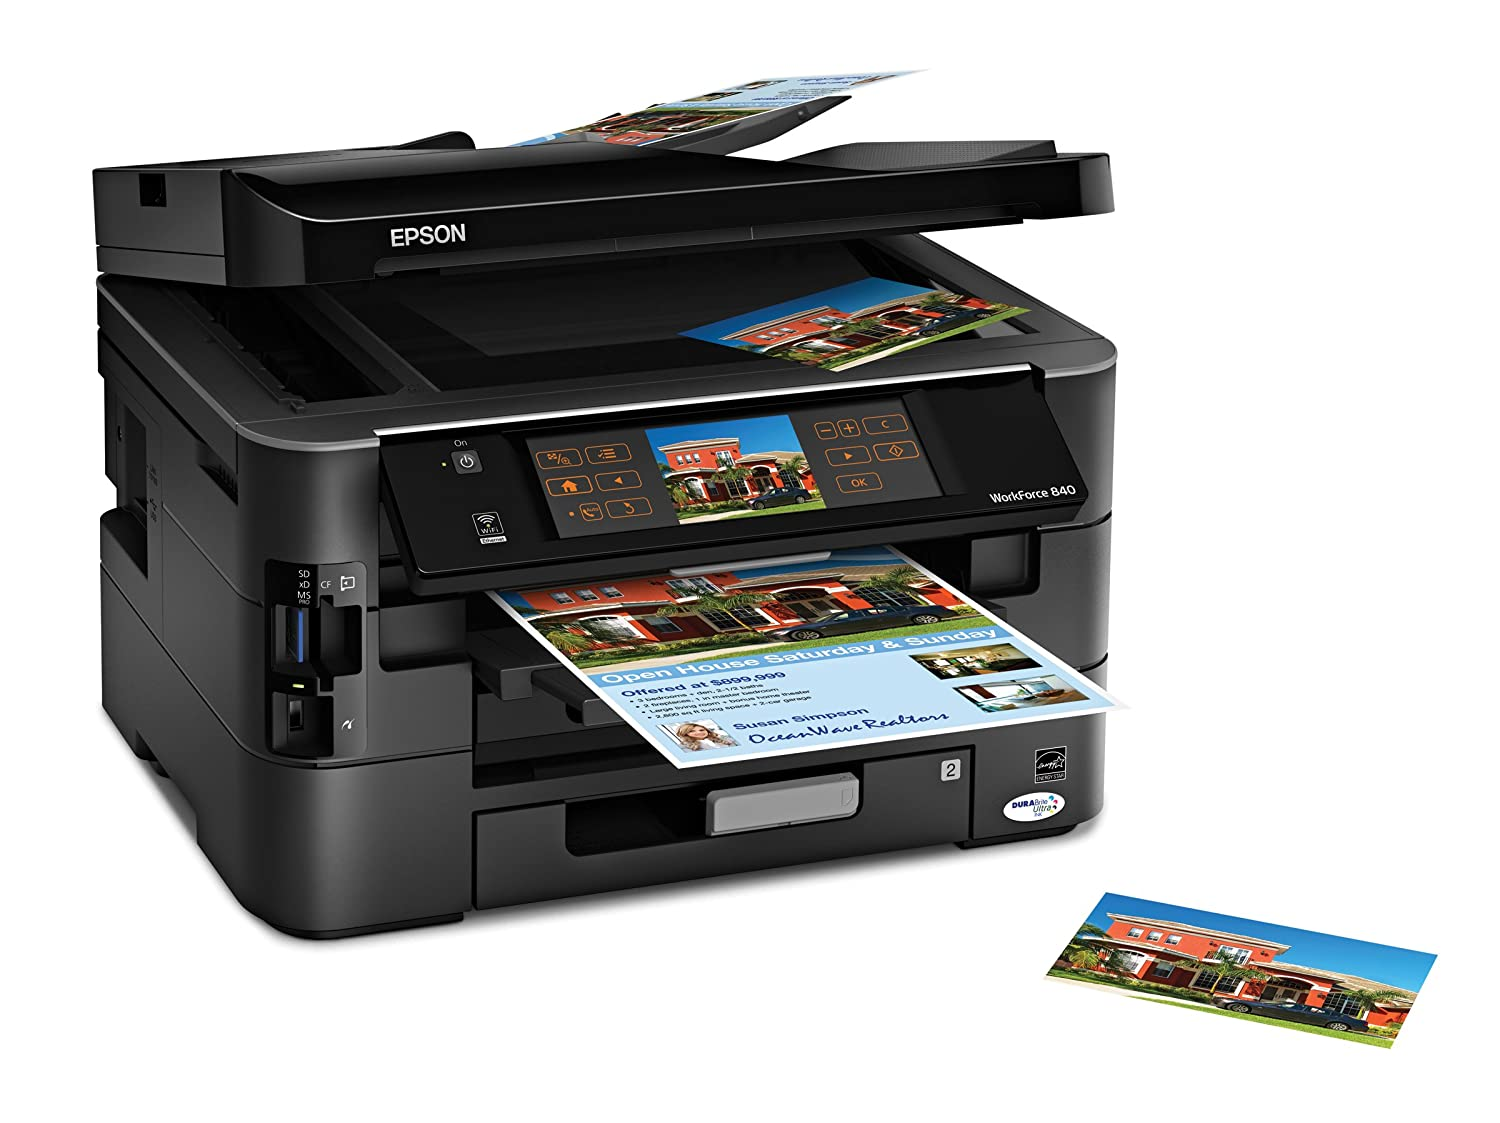 amazon com epson workforce 840 wireless all in one color inkjet rh amazon com Photo Paper Epson Workforce 840 Photo Paper Epson Workforce 840